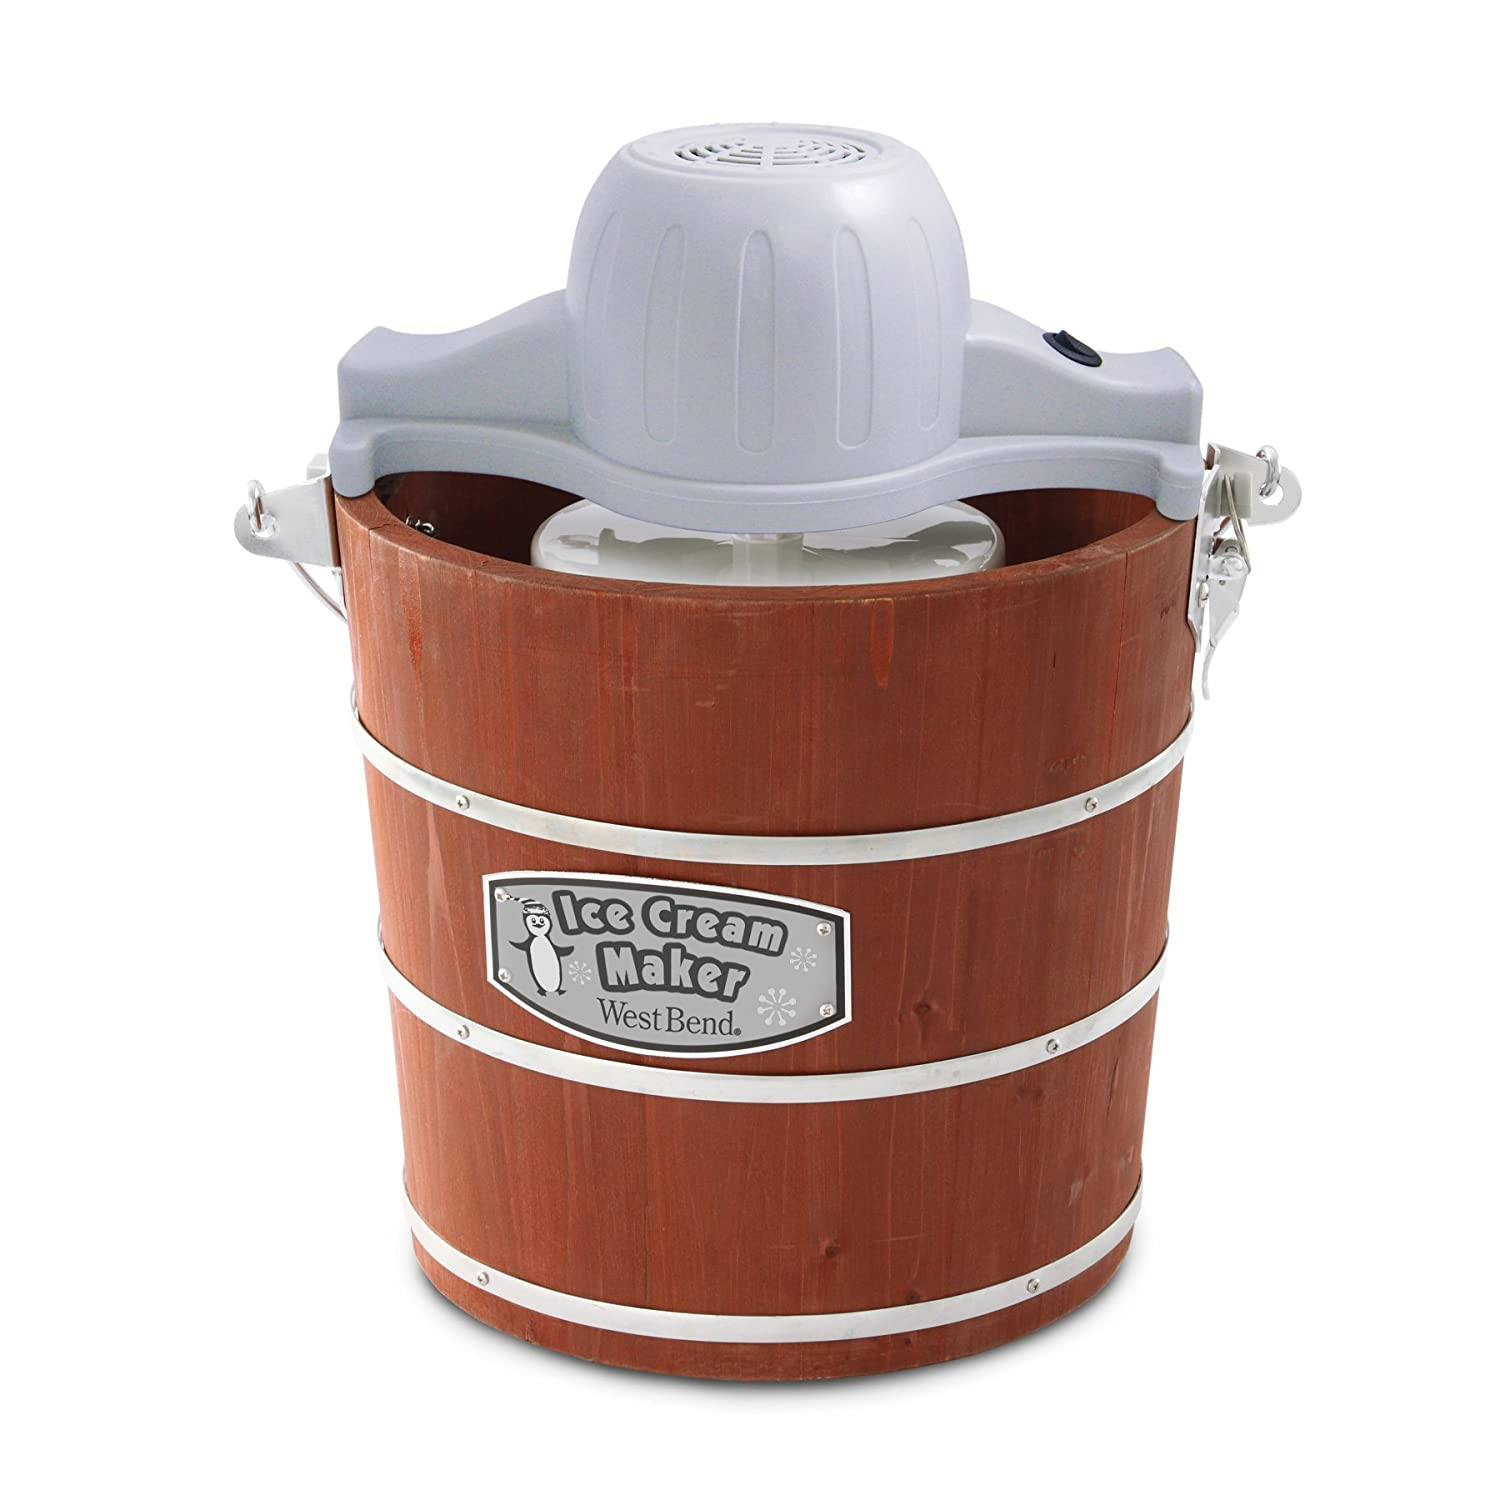 West Bend Wooden Ice Cream Maker, 4-Quart, Brown (Discontinued by Manufacturer)